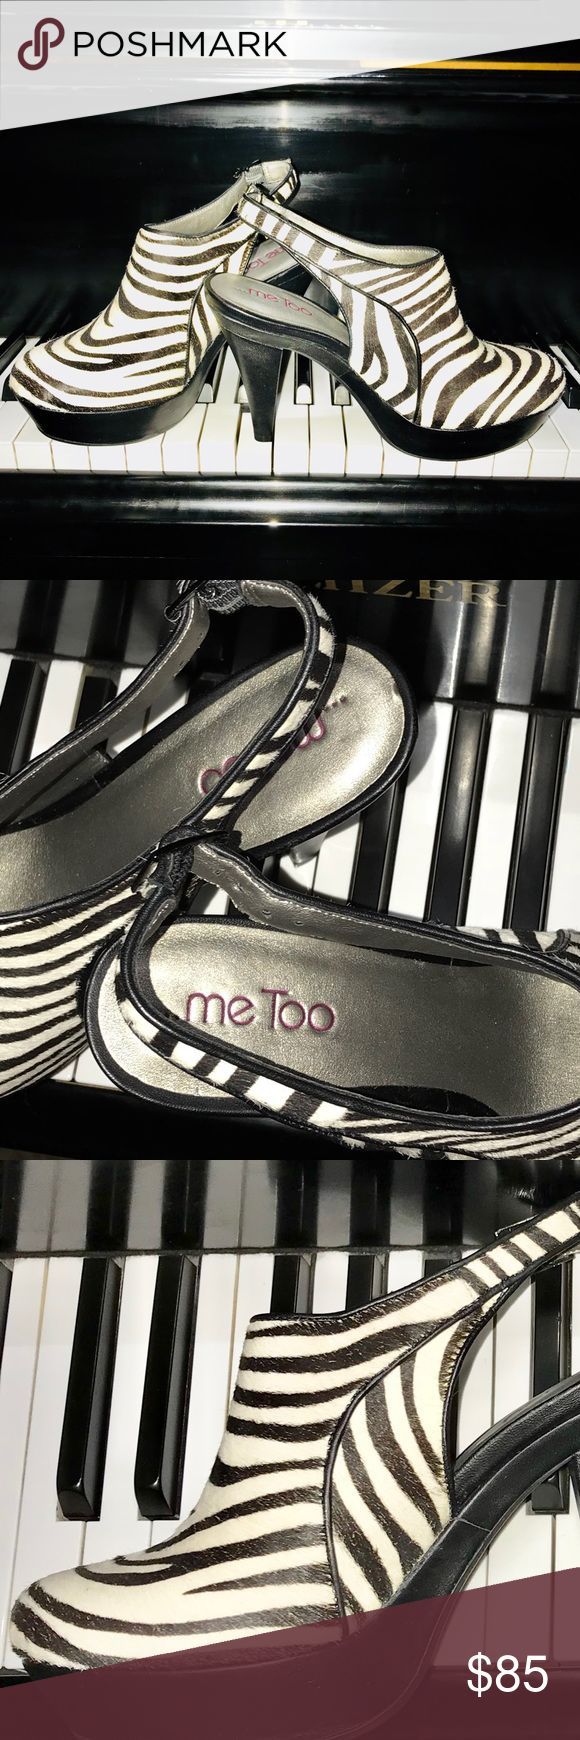 Mee too high heels camey style shoes High heels in camey style with a zebra design, pure leather shoes. Brand new, never been used. These shoes are the definition of comfort and style altogether.   Please ask any questions before buying No trades, exchanges ir returns mee too Shoes Heels